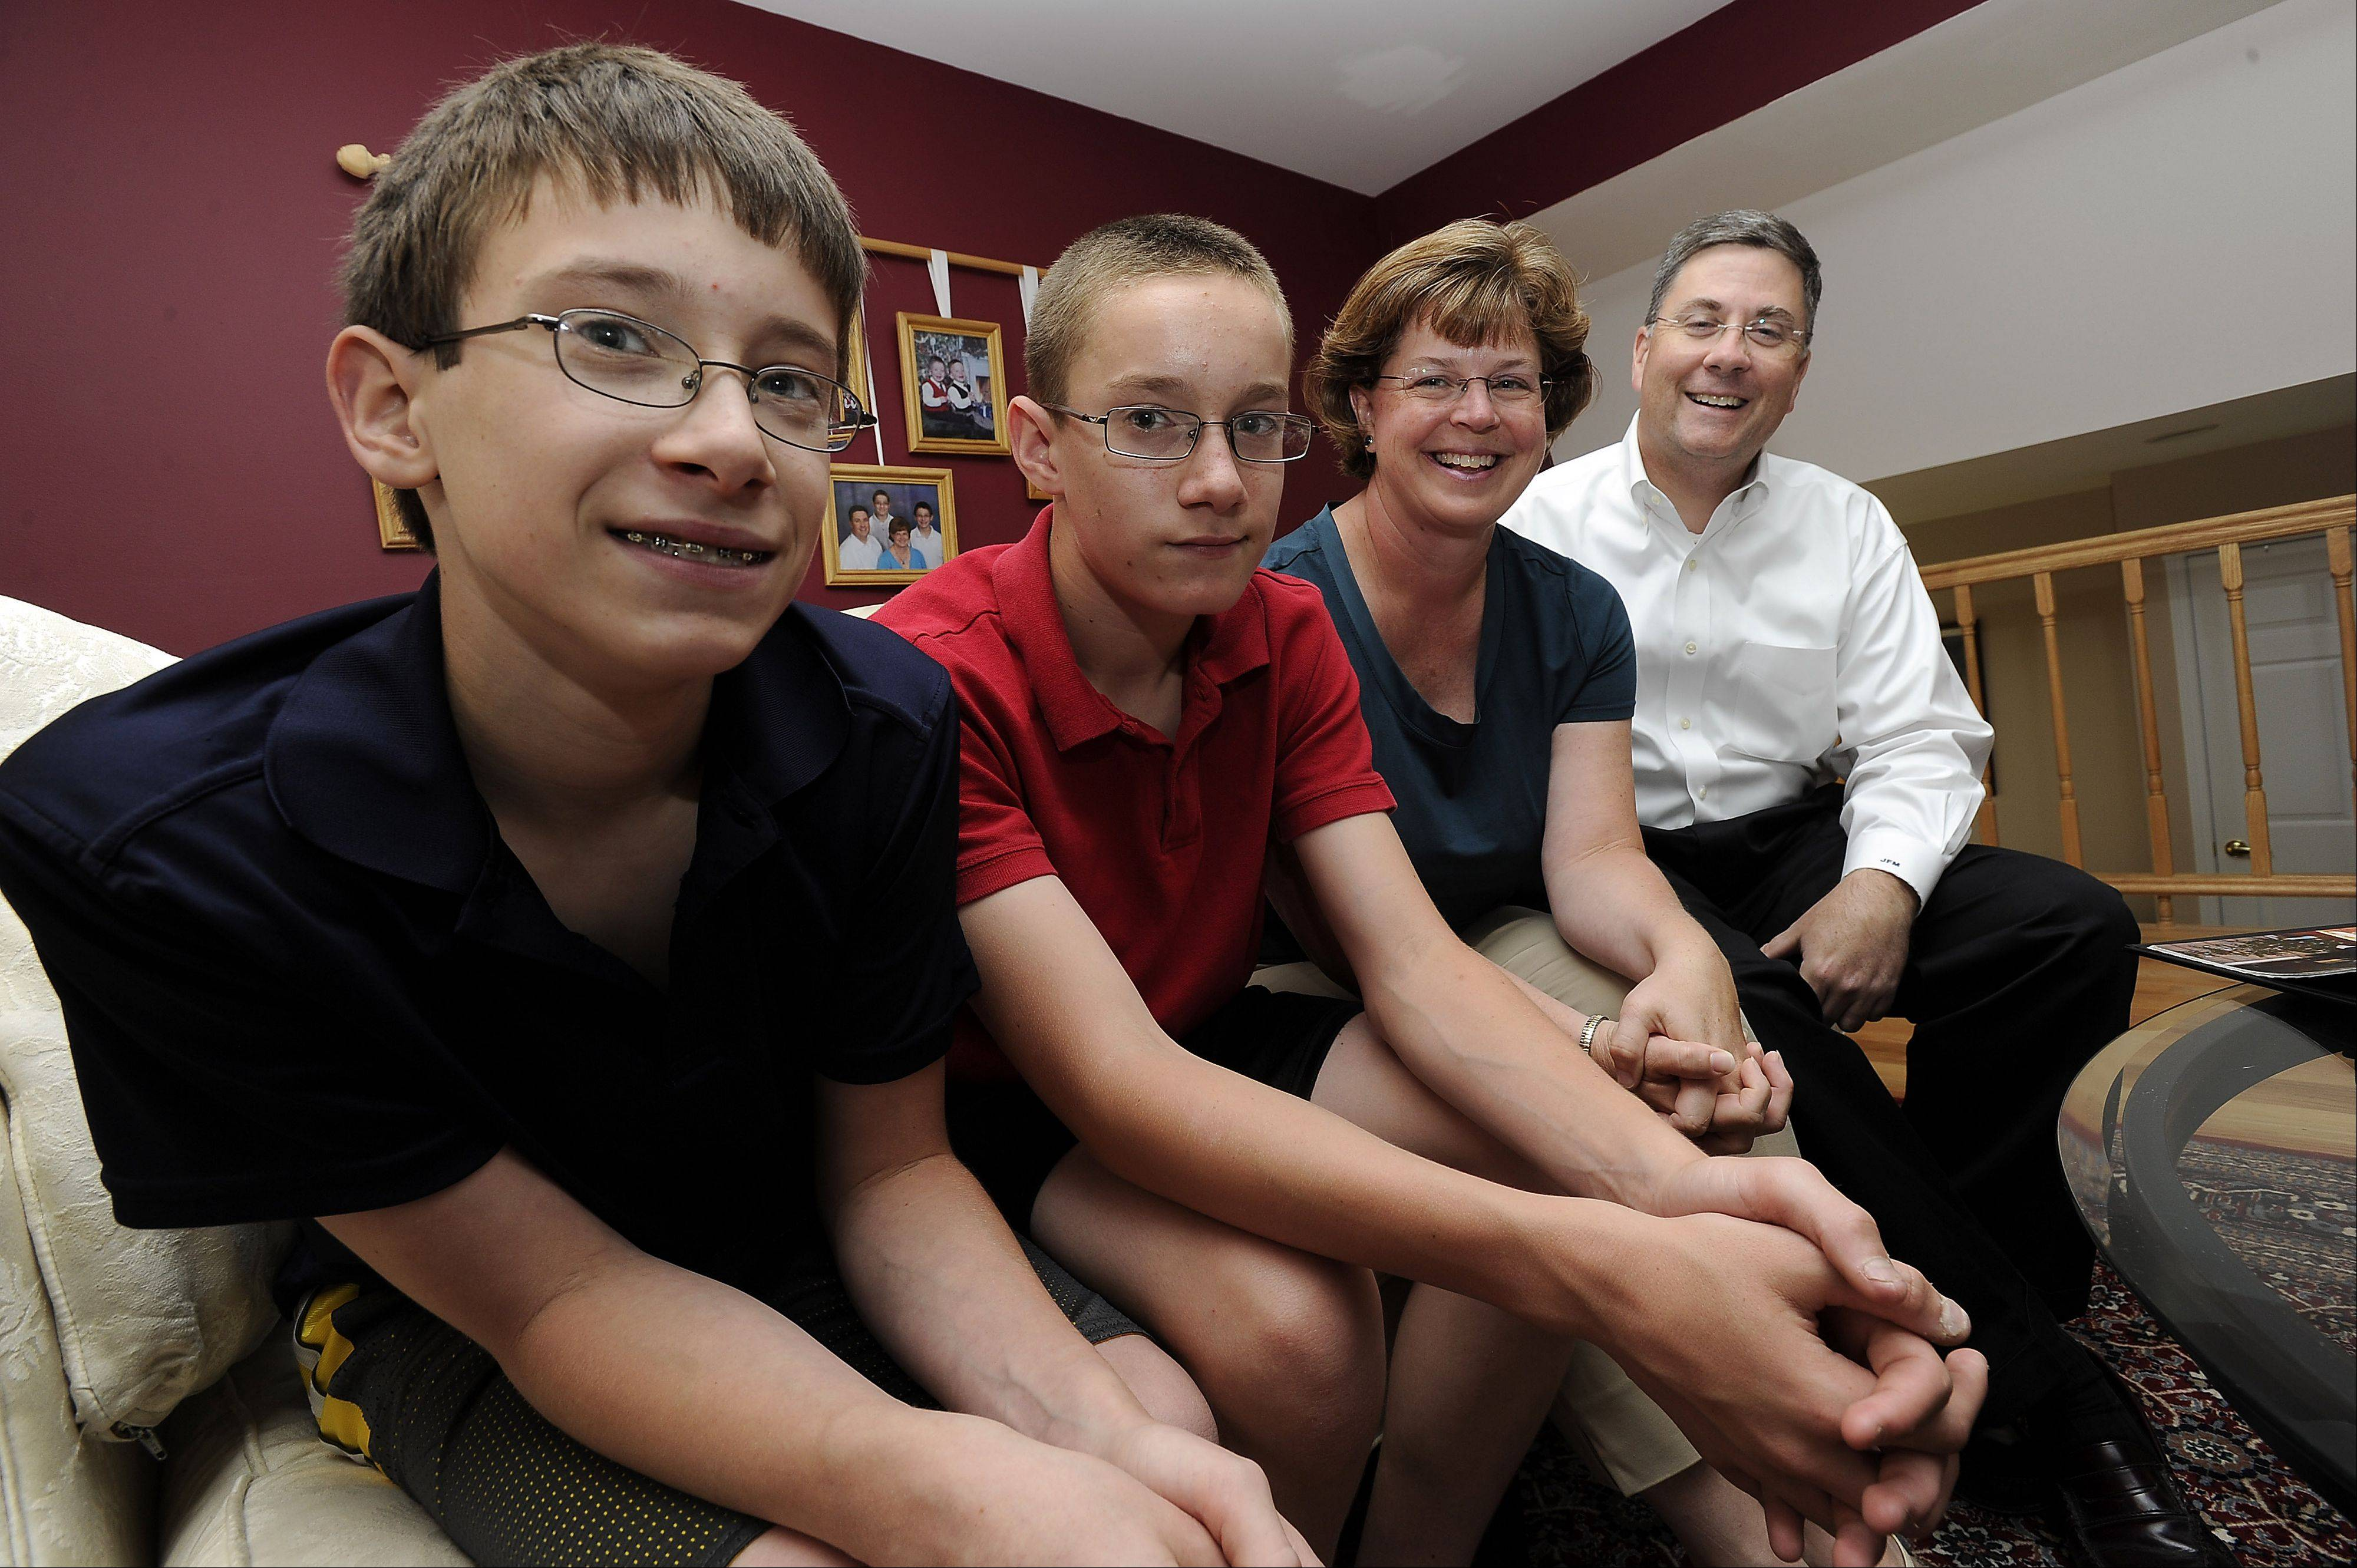 Jack and his twin brother Matt, 13, are heading back to Russia along with their parents, John And Kathy McDermott of Hoffman Estates who adopted them from an orphanage there in 1999.